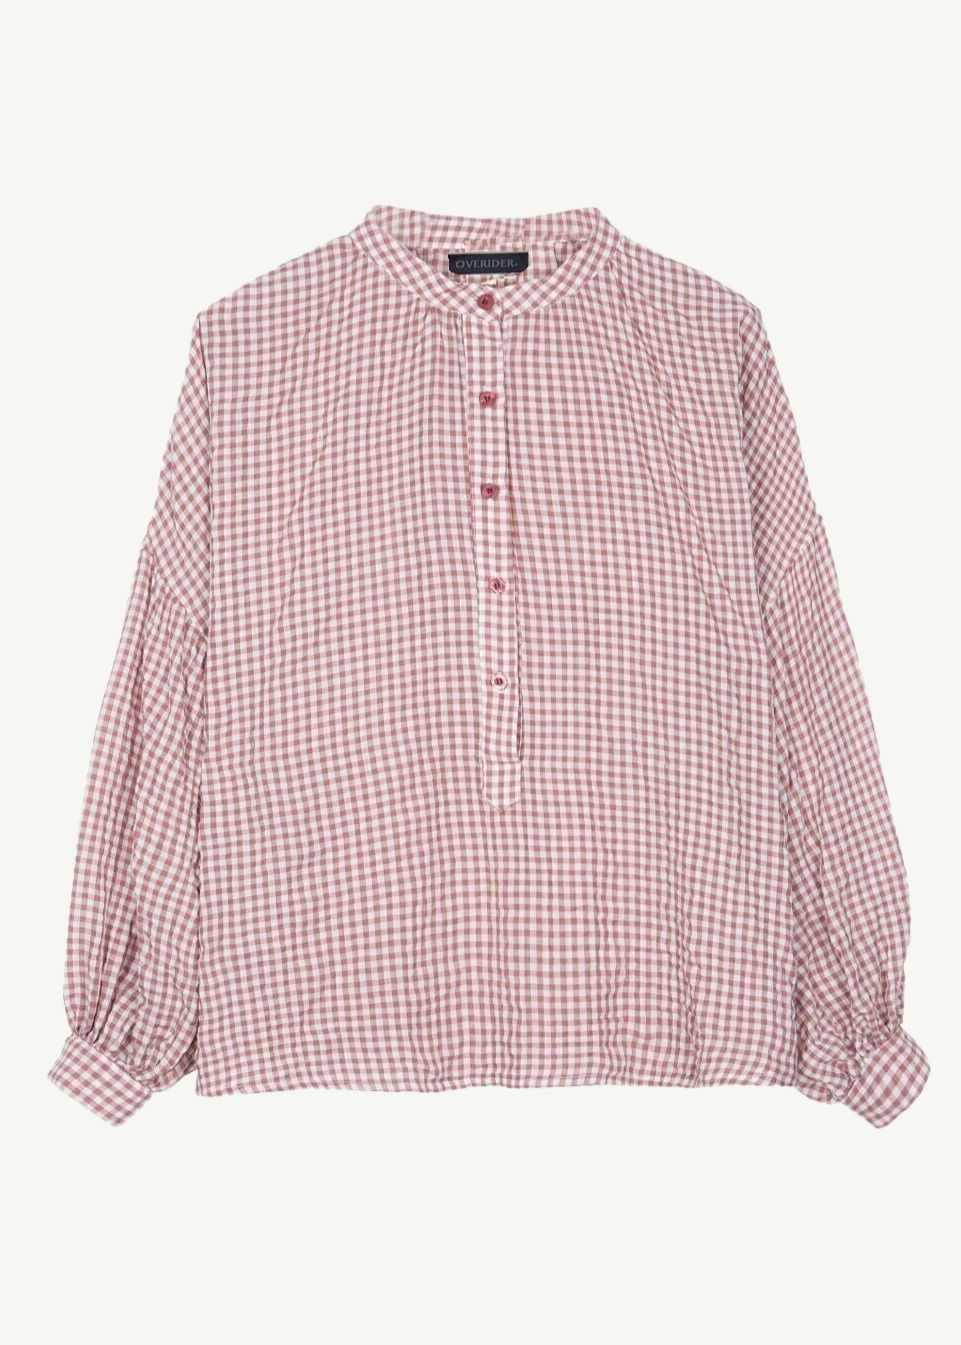 BASTINA - Gingham Shirt - Blush